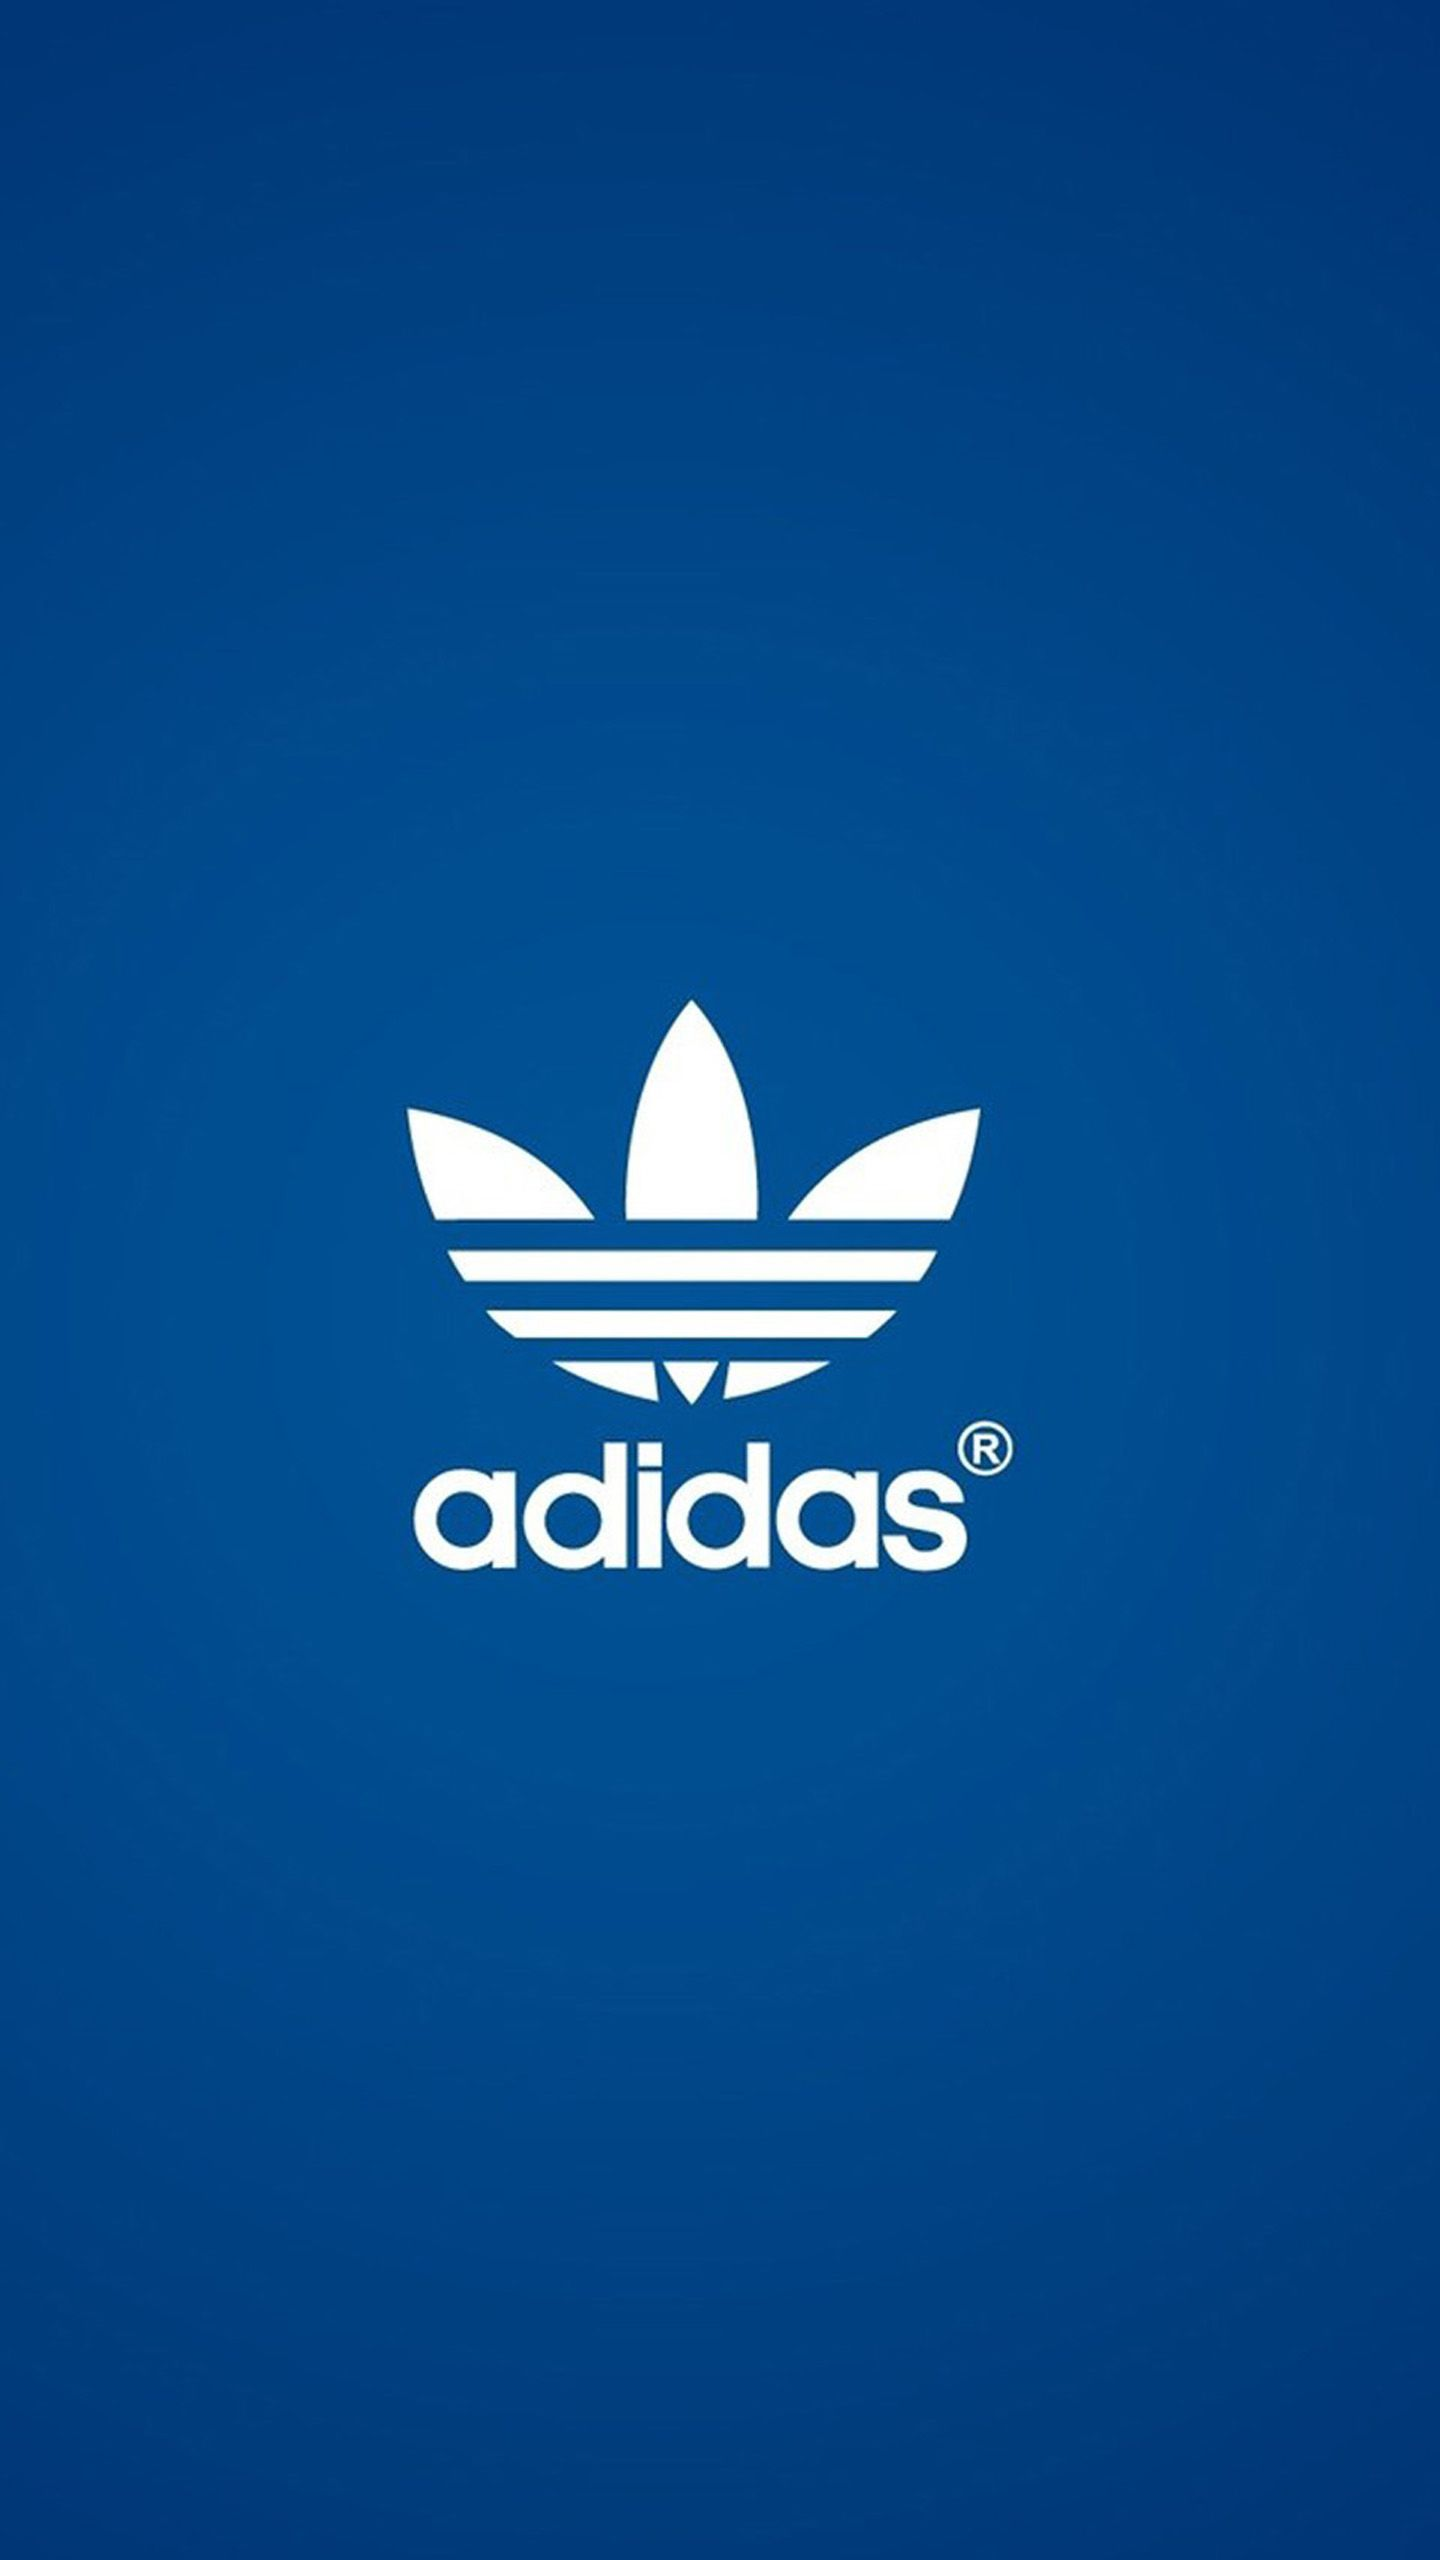 Adidas Samsung Galaxy S8 Wallpaper 2020 Live Wallpaper Hd Adidas Logo Wallpapers Adidas Iphone Wallpaper Adidas Wallpapers